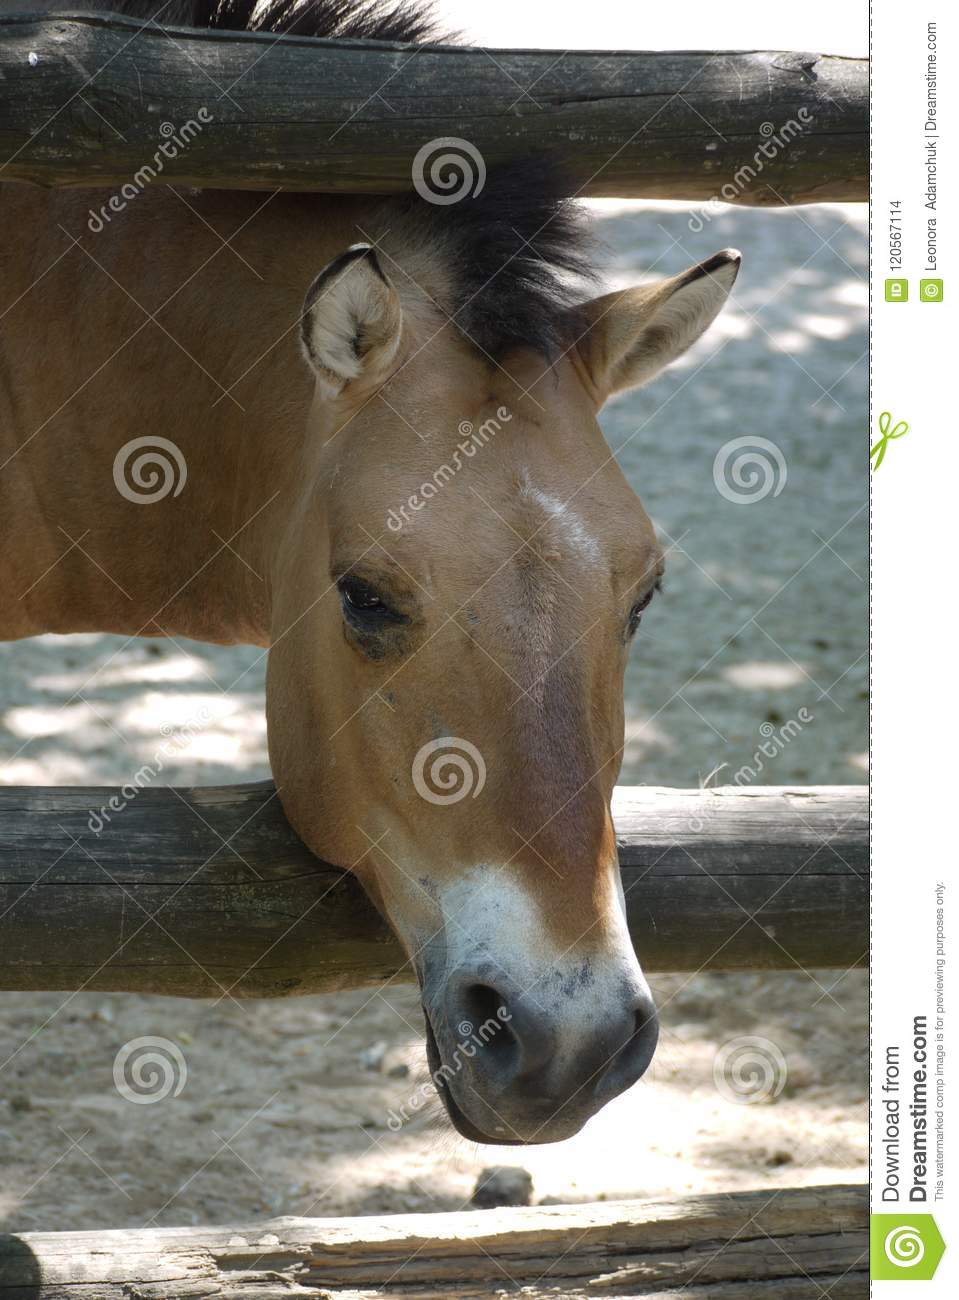 The brown horse stuck his head through the wooden fence. zoo, nature reserve, place of family rest with children